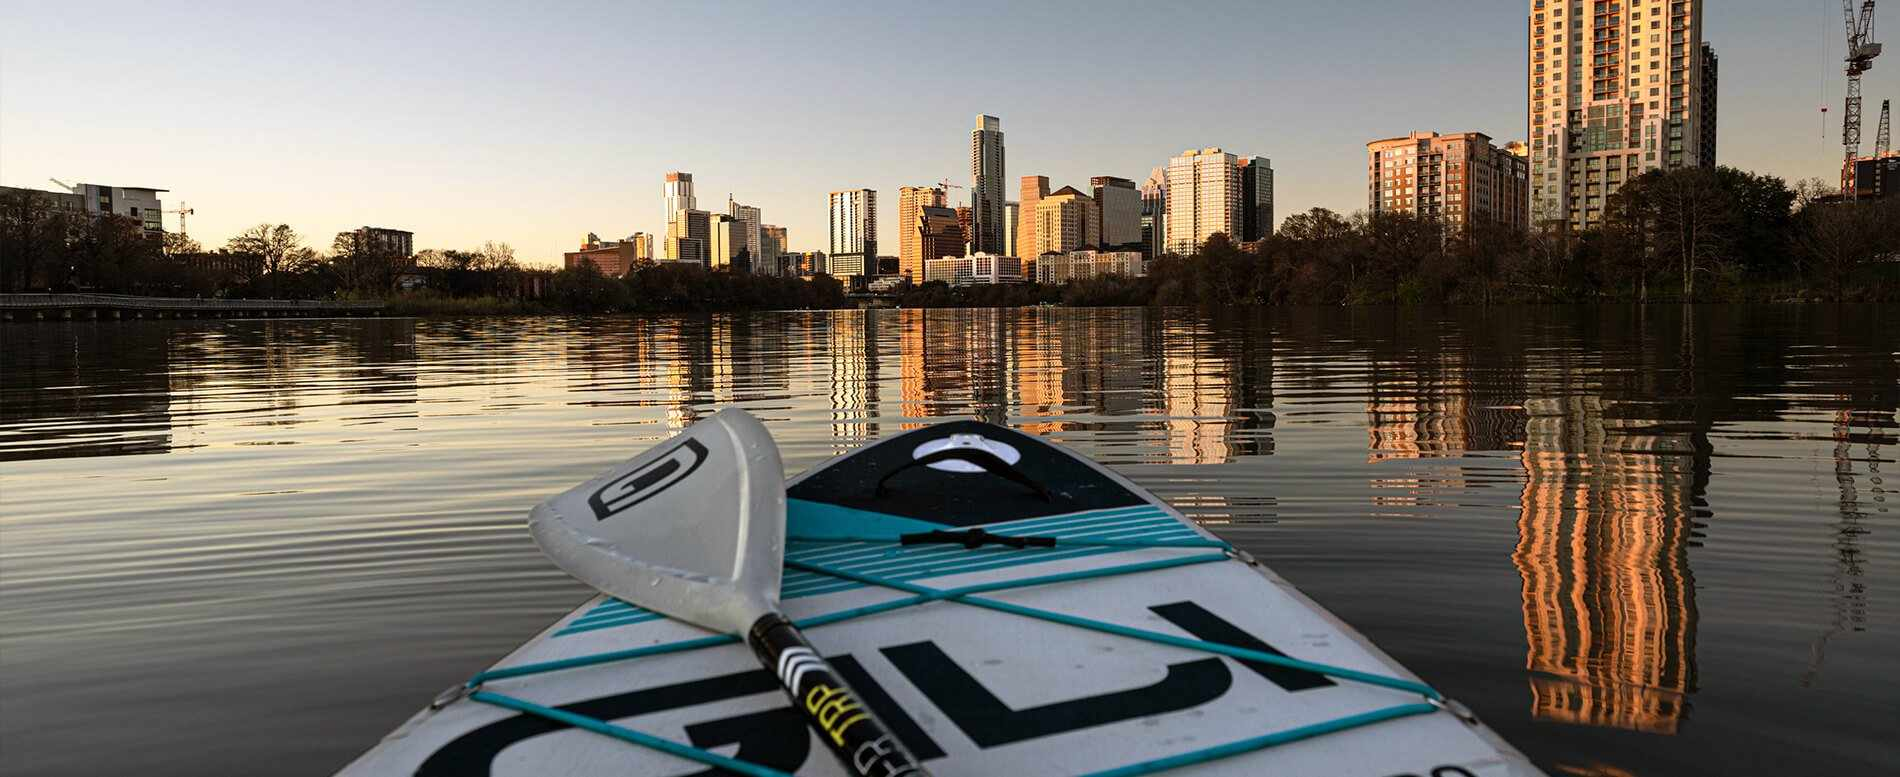 The 11 Best Places For Paddle Boarding In Austin, Texas